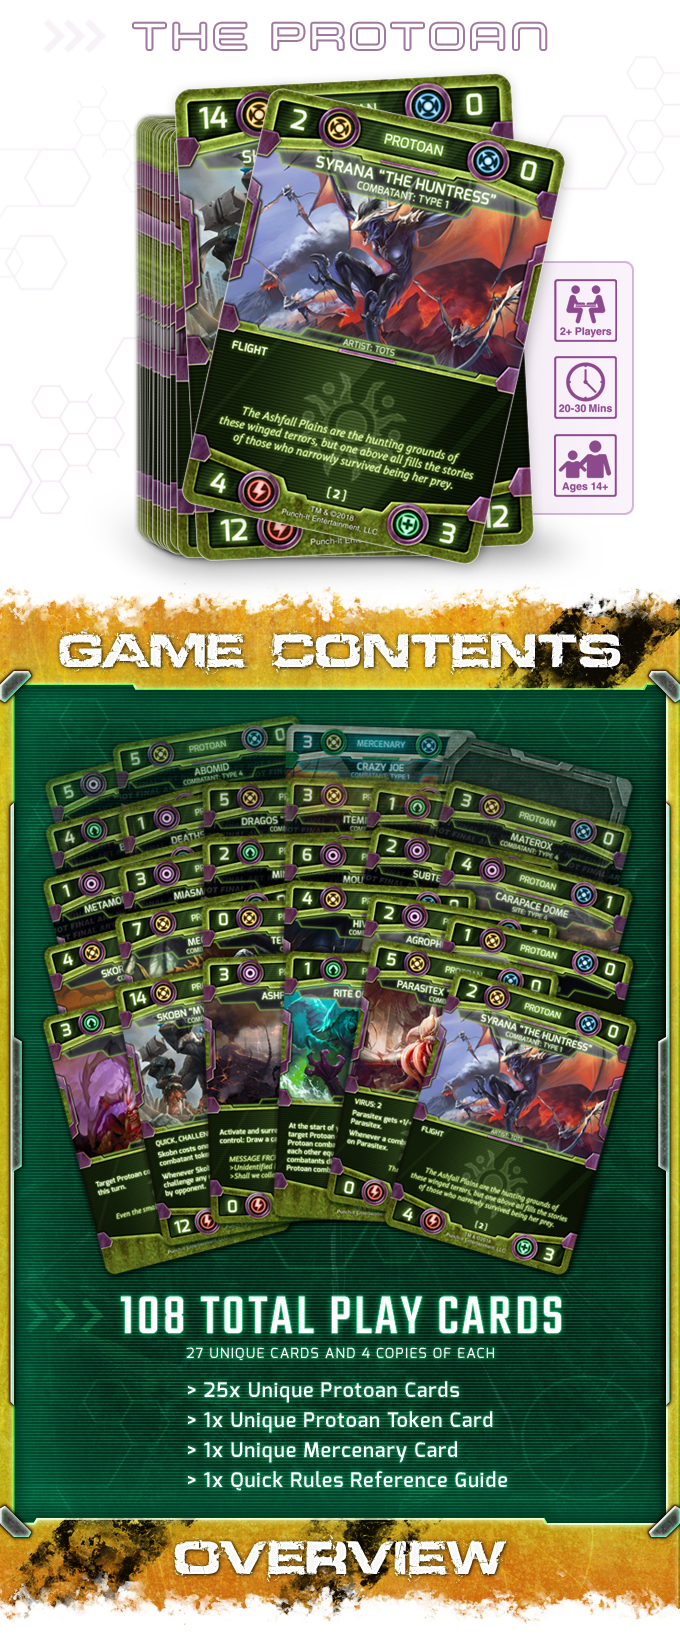 KS_RoT_Game Contents_06.jpg